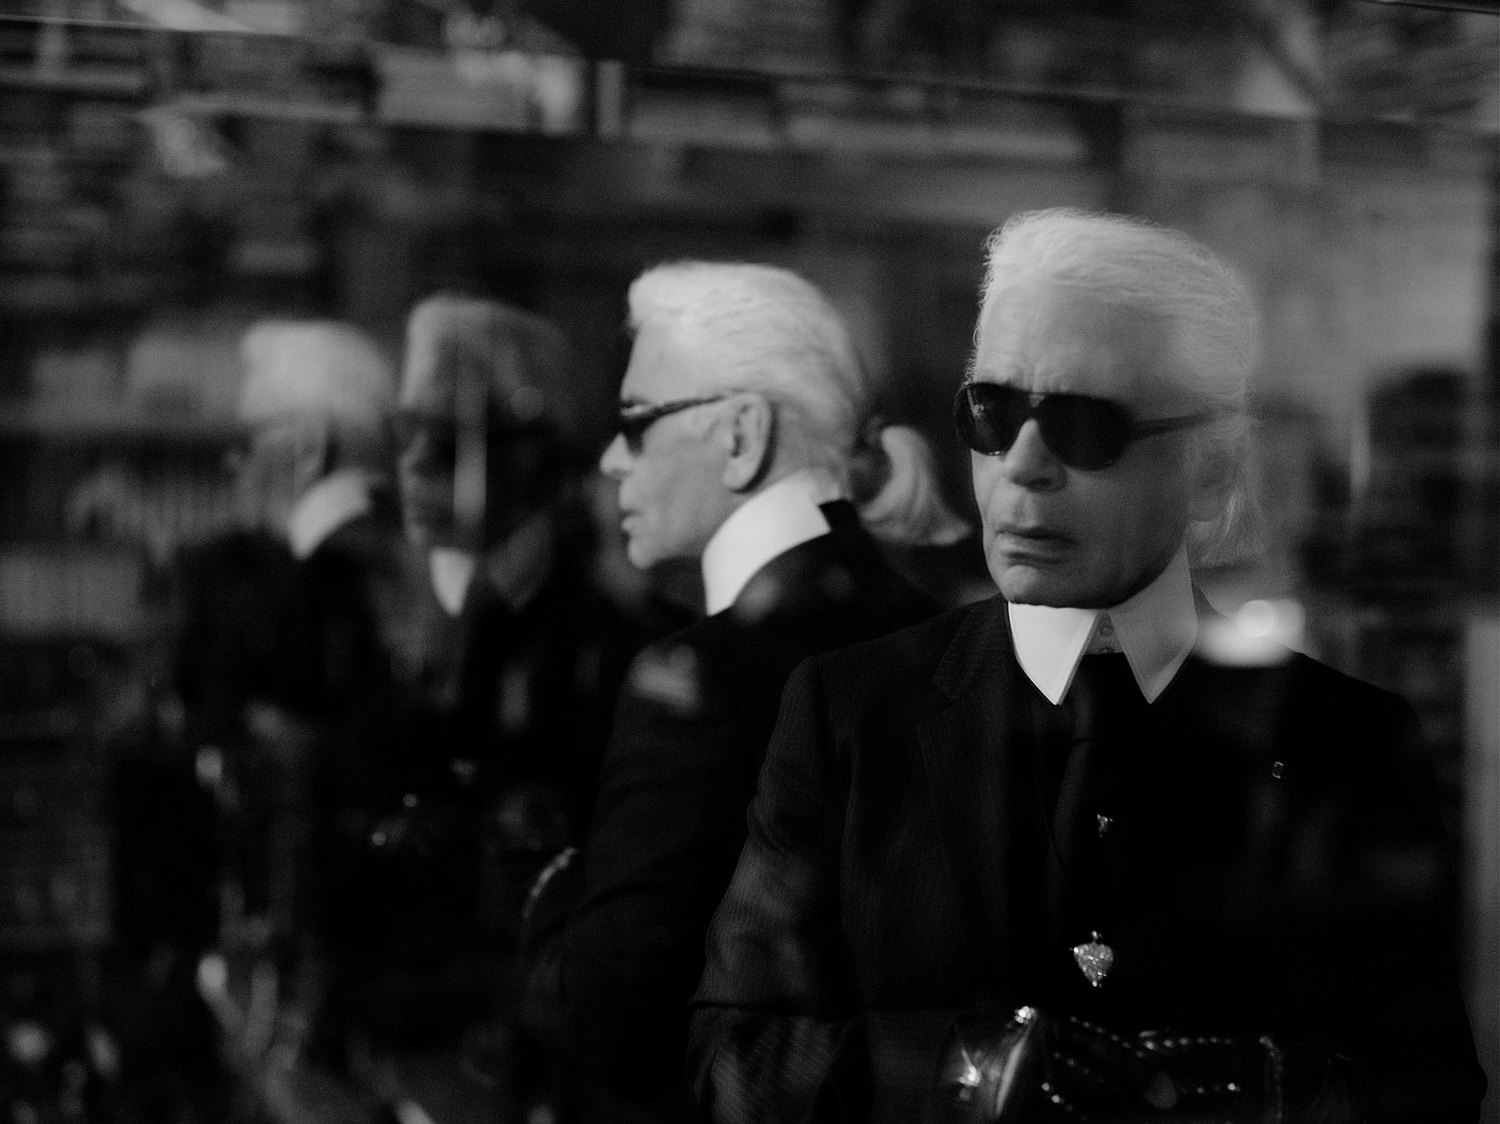 KARL LAGERFELD – MASTER OF DISTRACTION